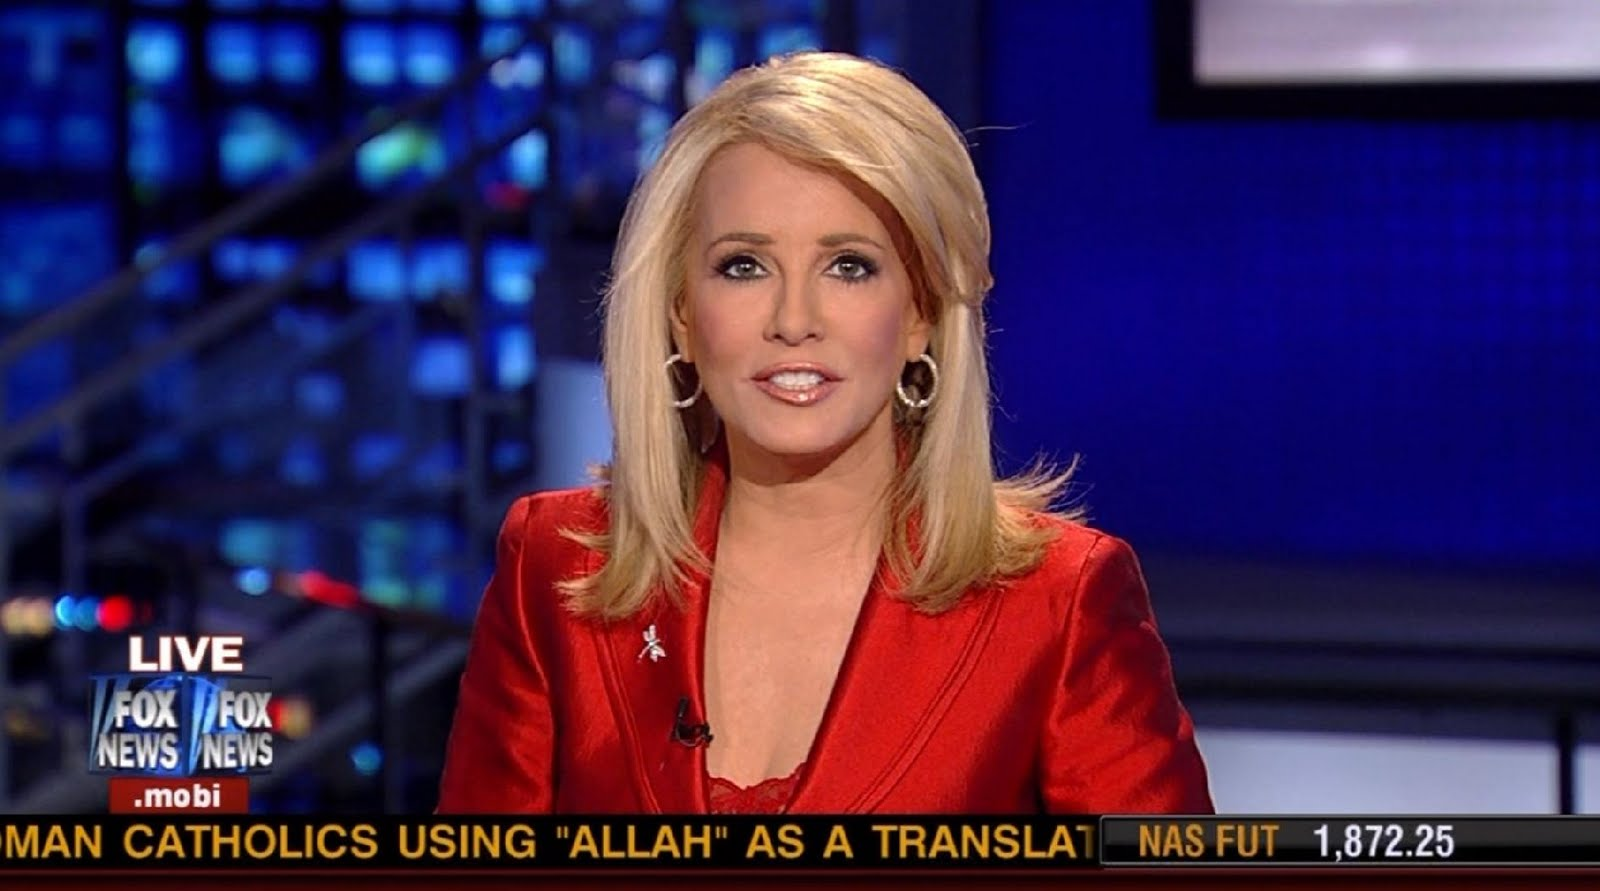 Martha MacCallum Pictures http://ladiesinsatin.blogspot.com/2010/12/martha-maccallum-red-satin-suit.html